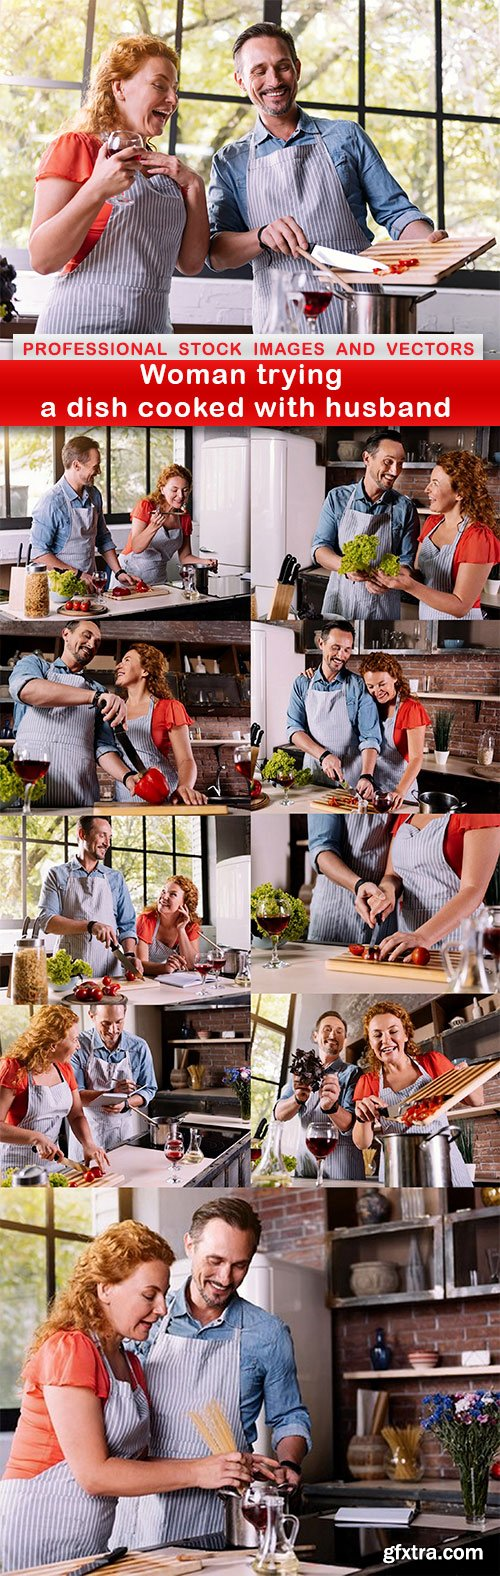 Woman trying a dish cooked with husband - 10 UHQ JPEG